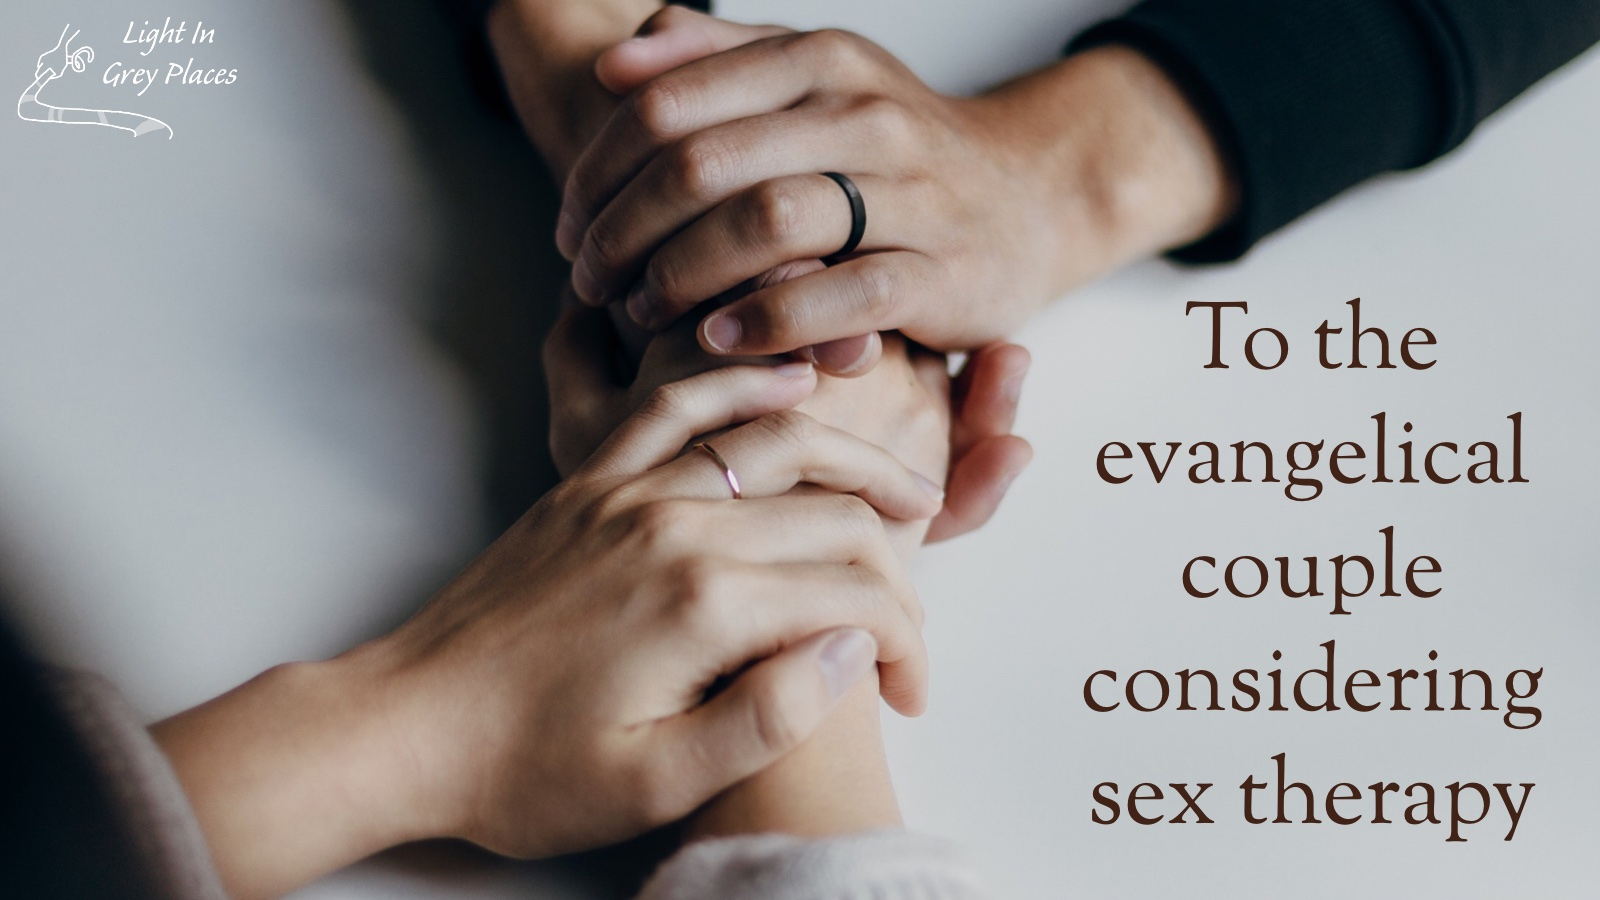 Close up of a couple holding each other's hands. Text: To the evangelical couple considering sex therapy.